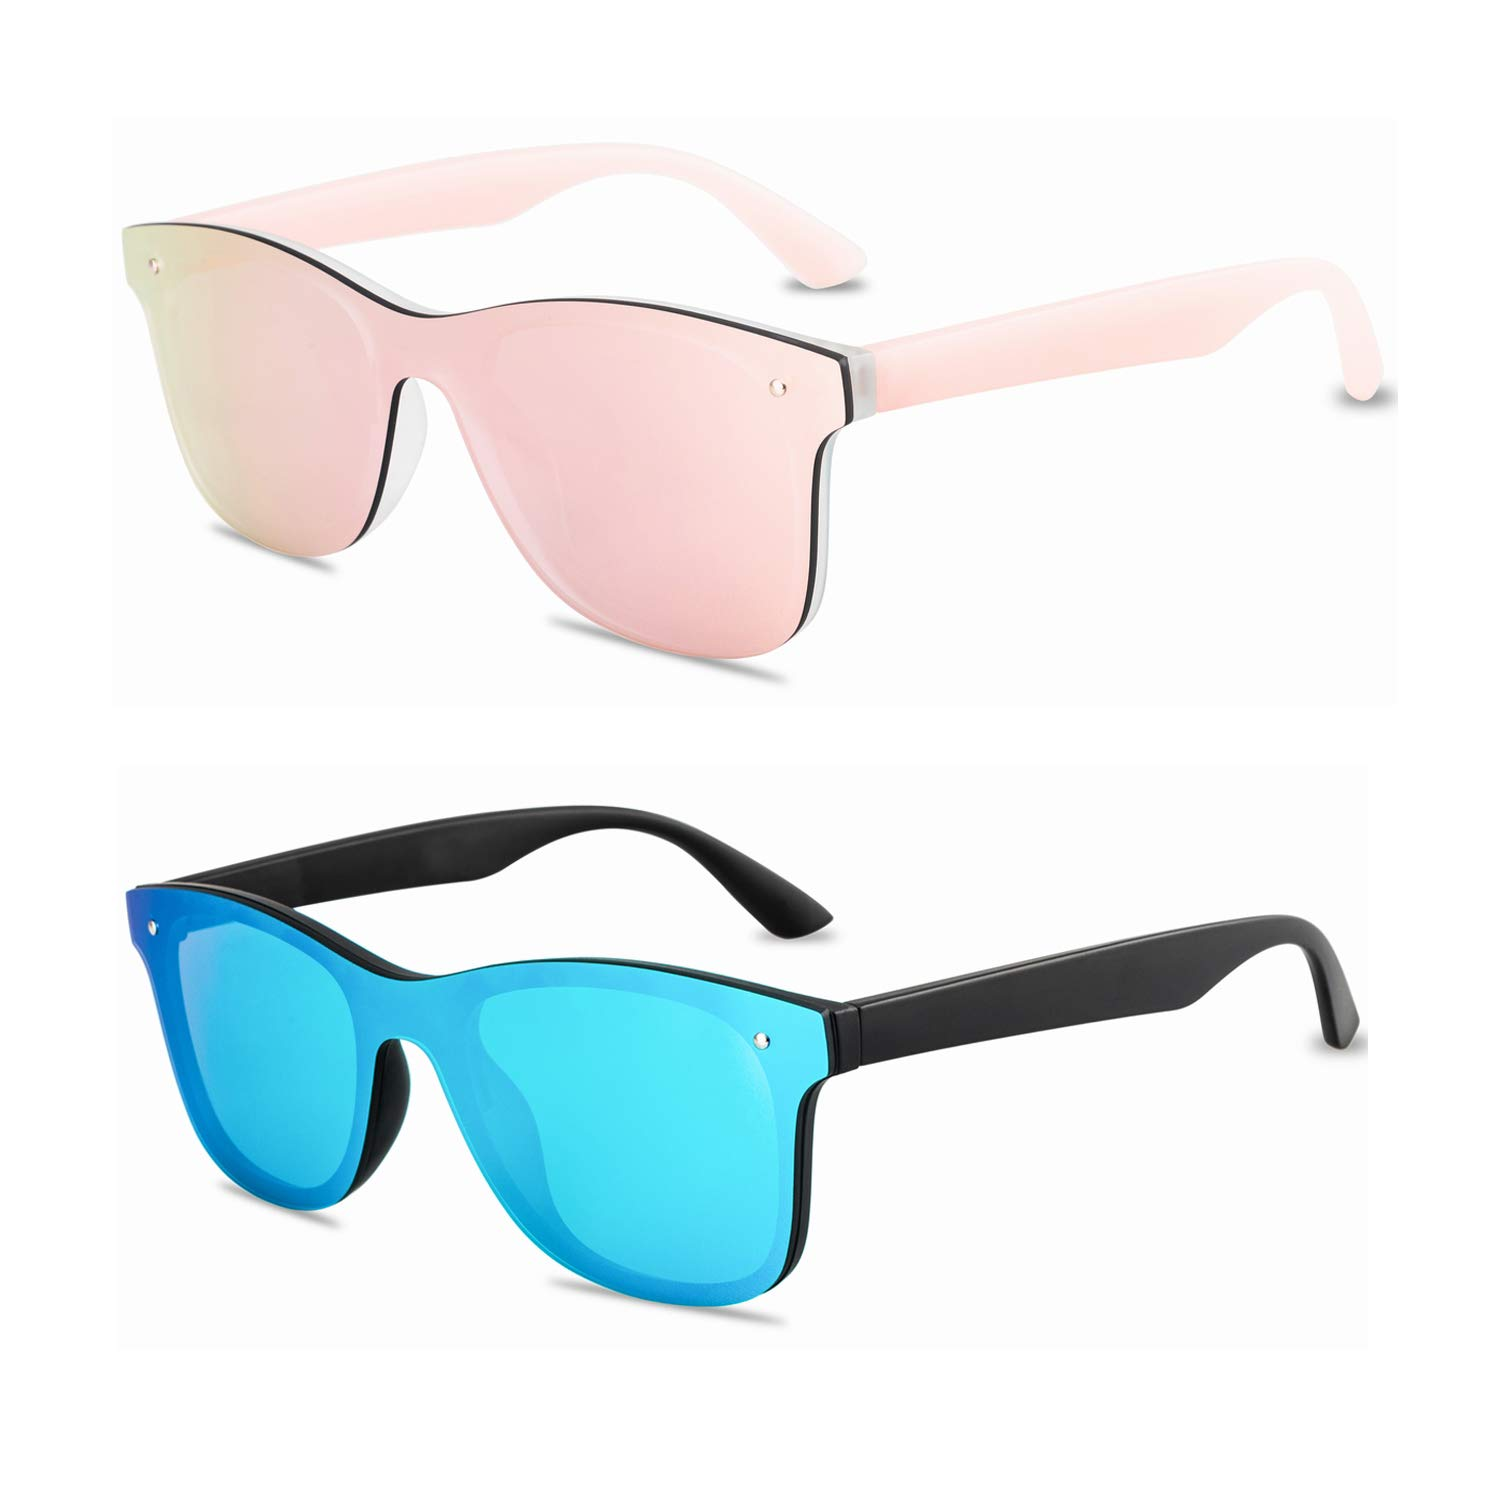 Amazon.com: Rimless Mirrored Lens One Piece Sunglasses UV400 ...